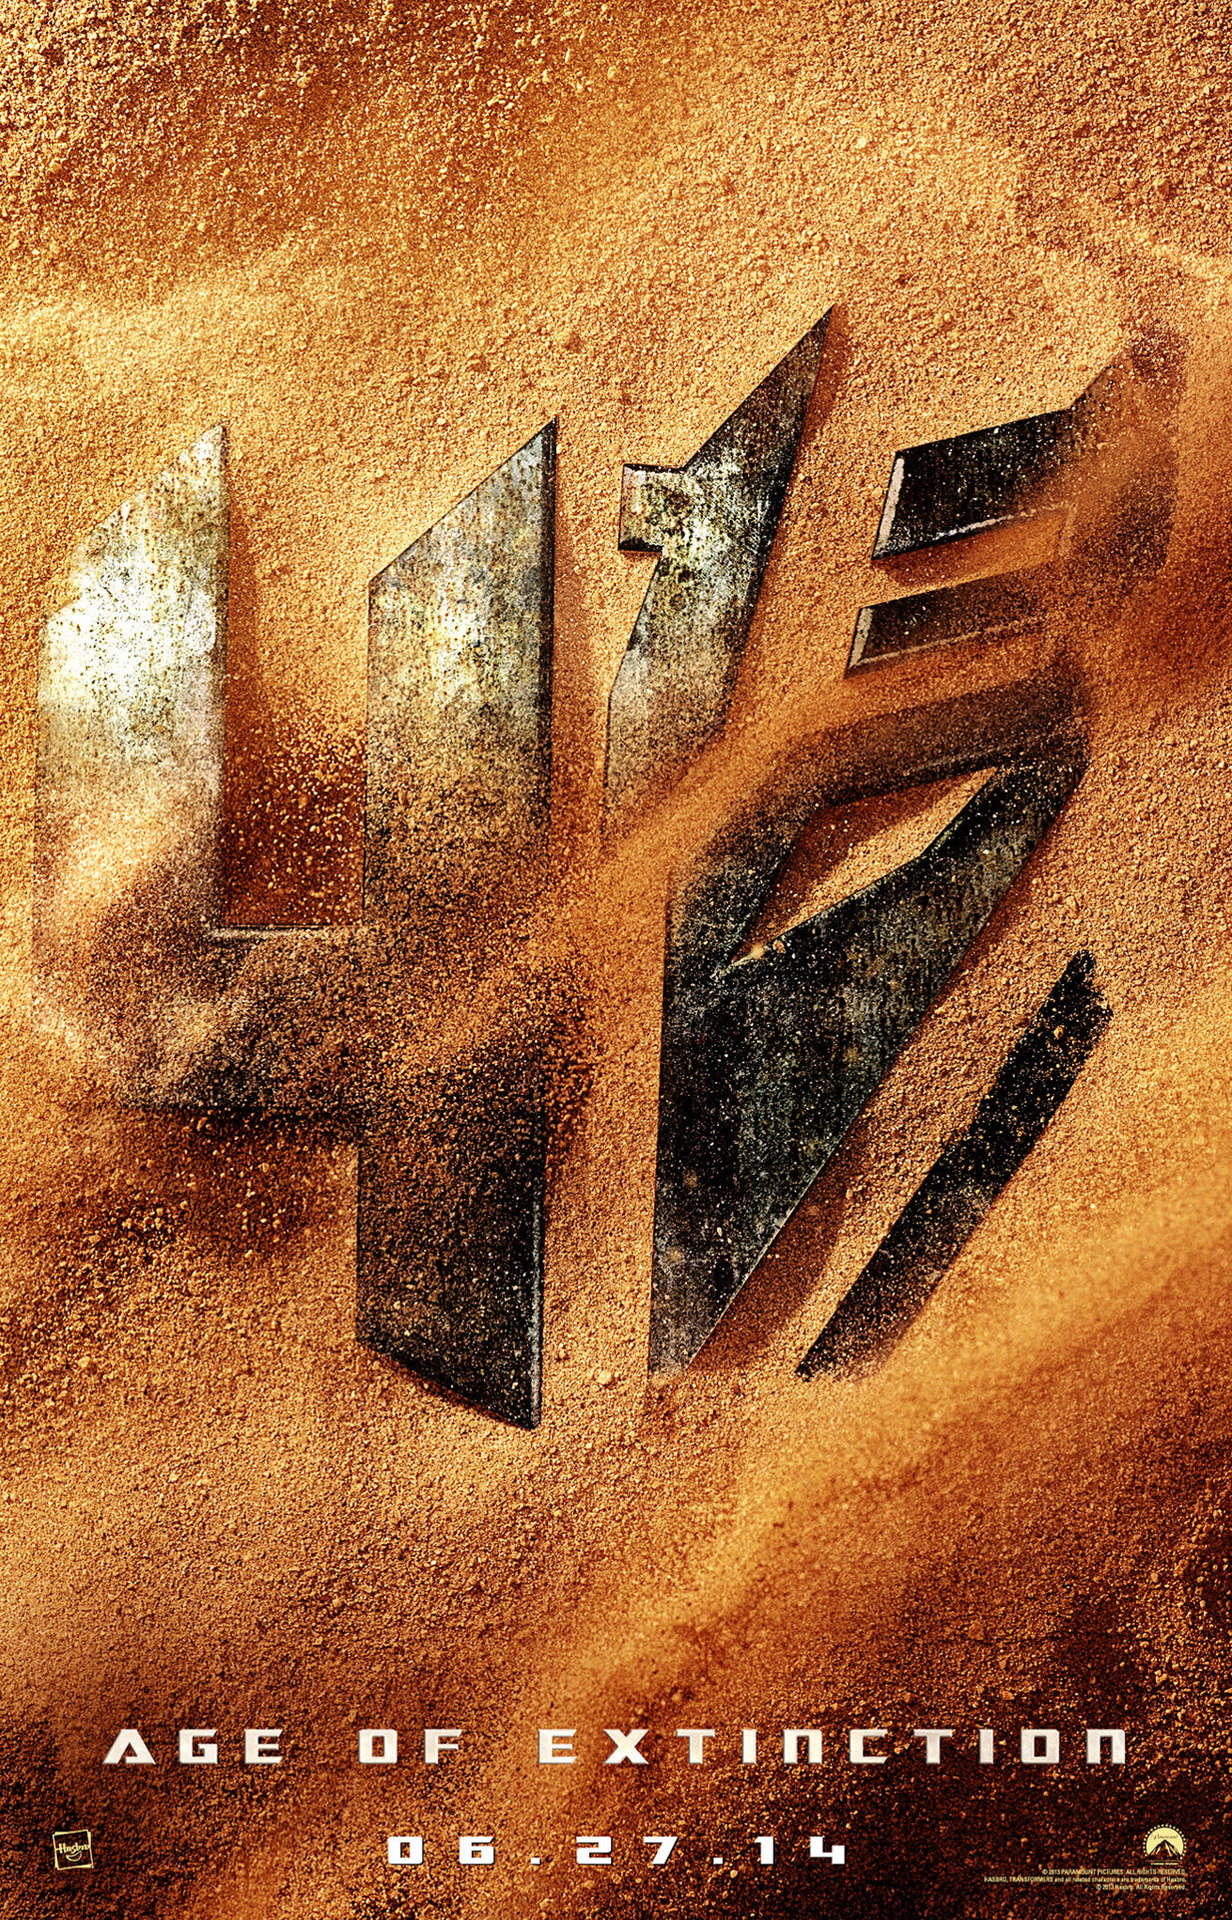 Age of extinction transformers